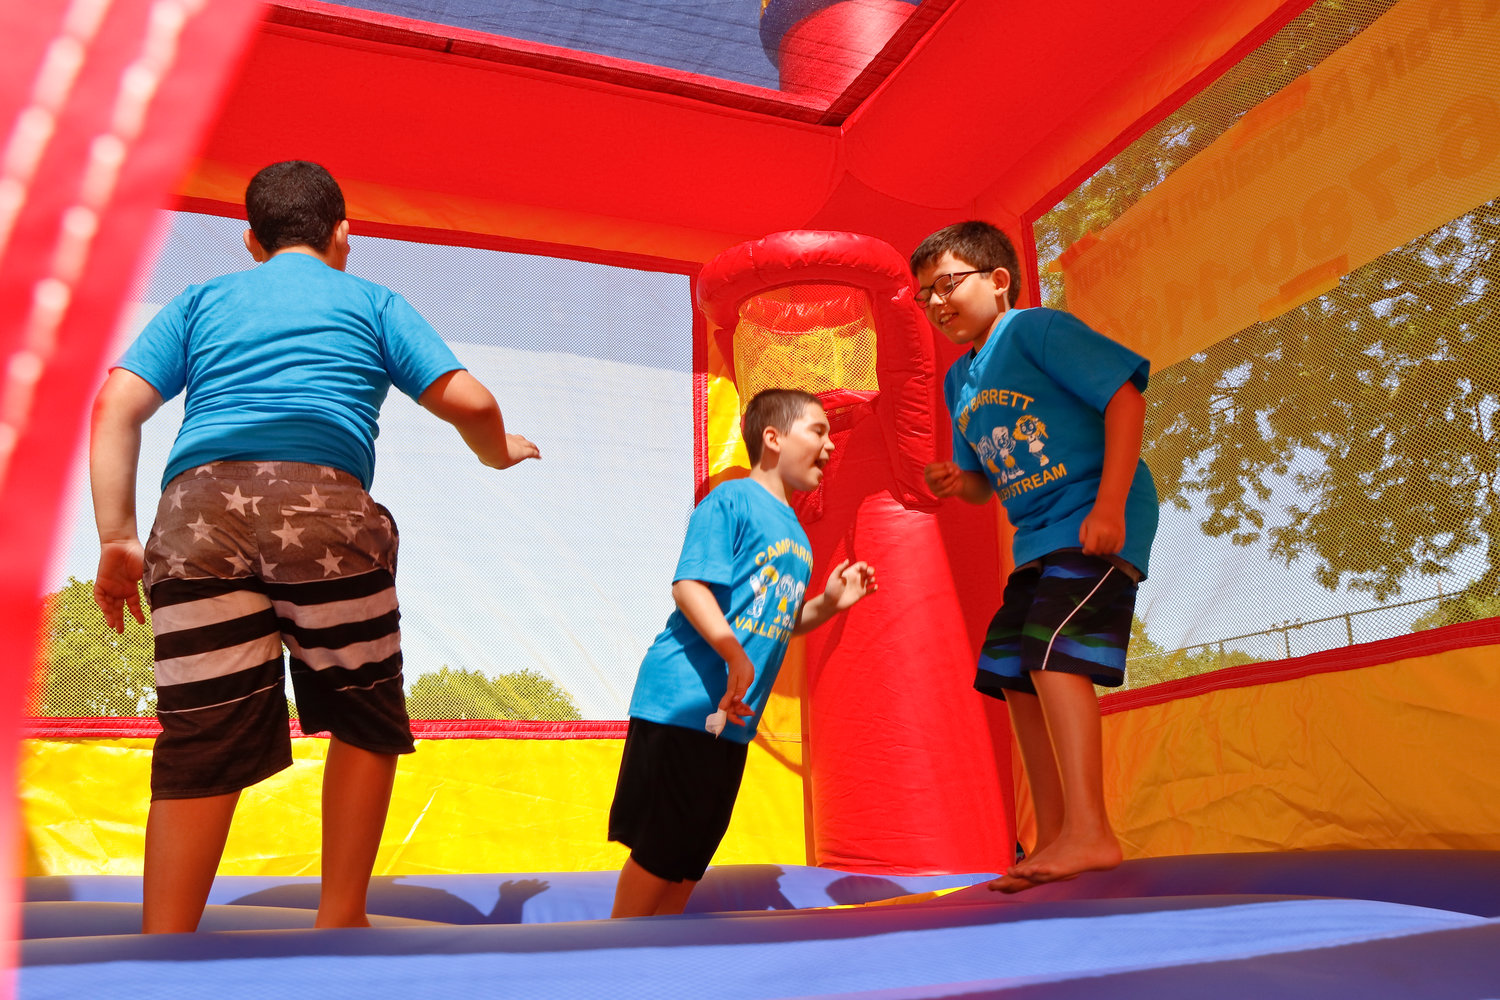 Triplets Steven, from left, Anthony and Joseph Figueroa in the camp's new bounce house.